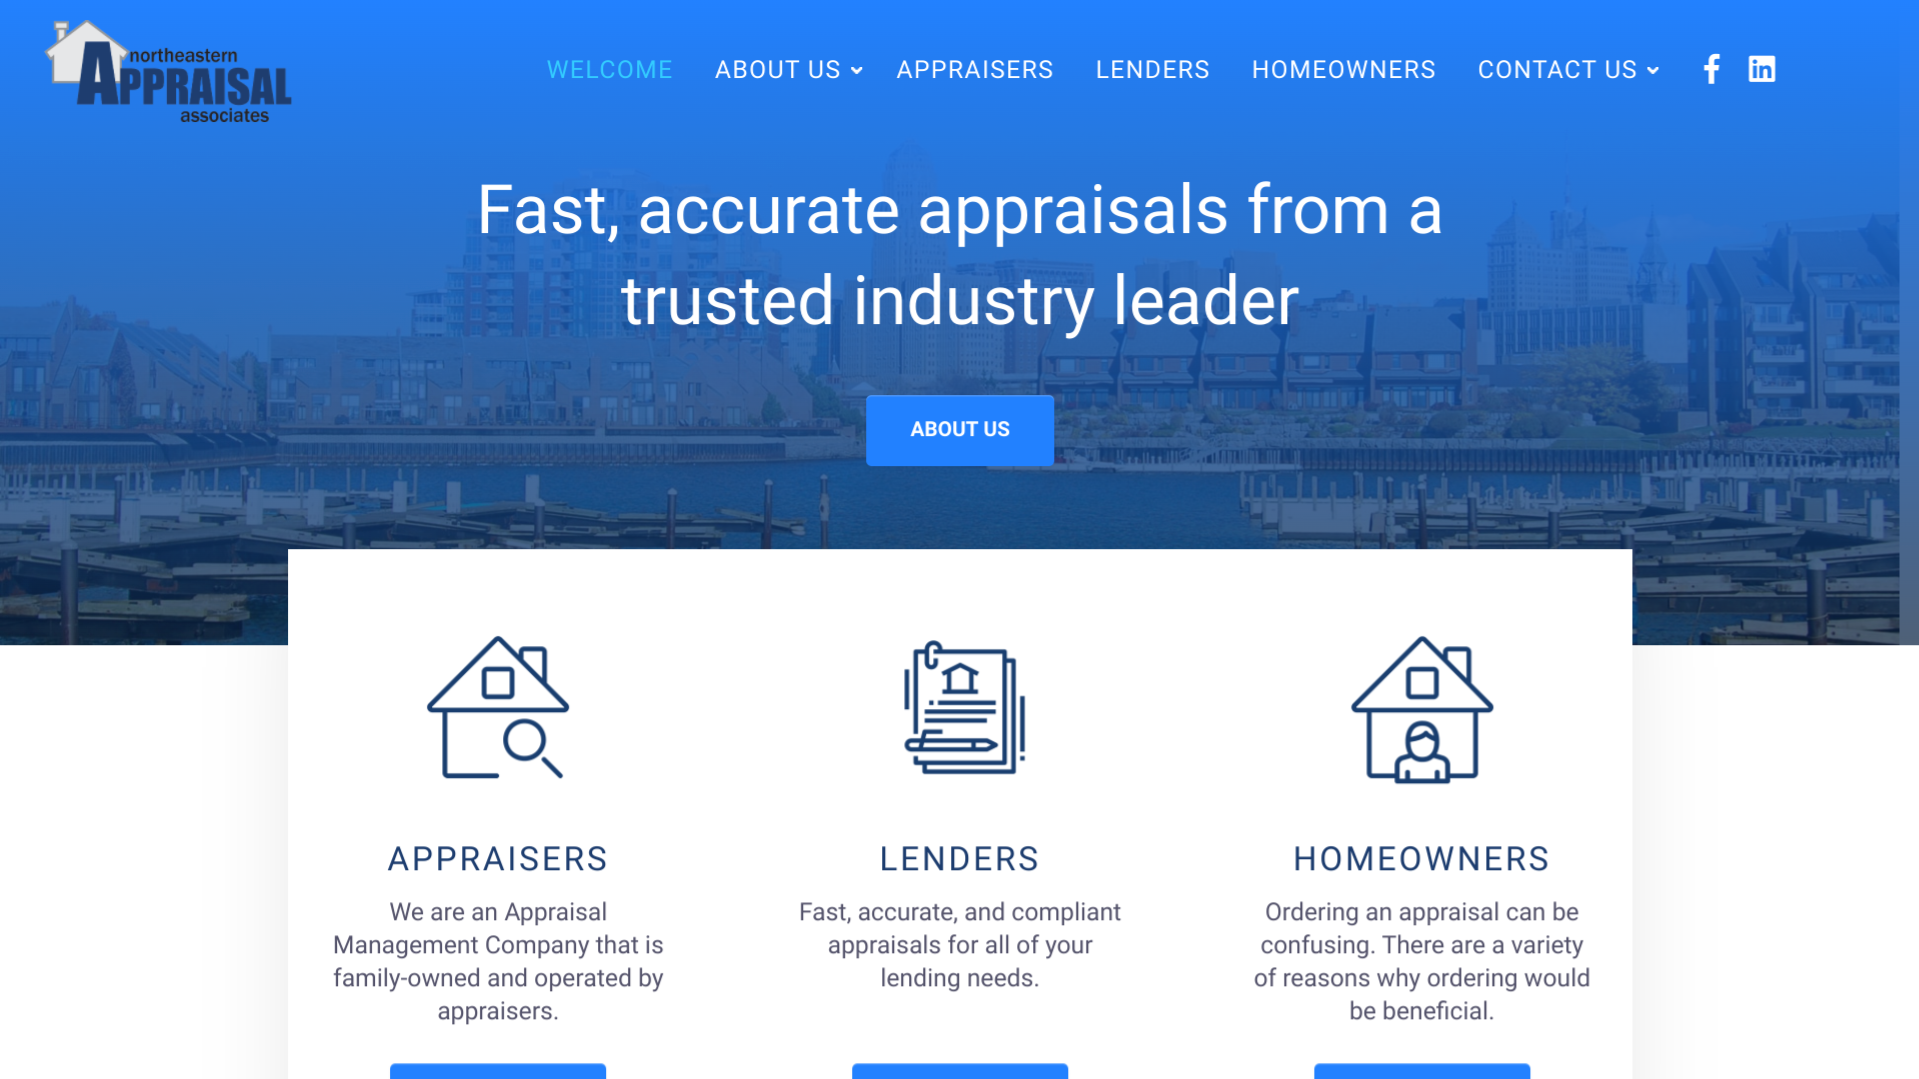 Northeastern Appraisal Associates